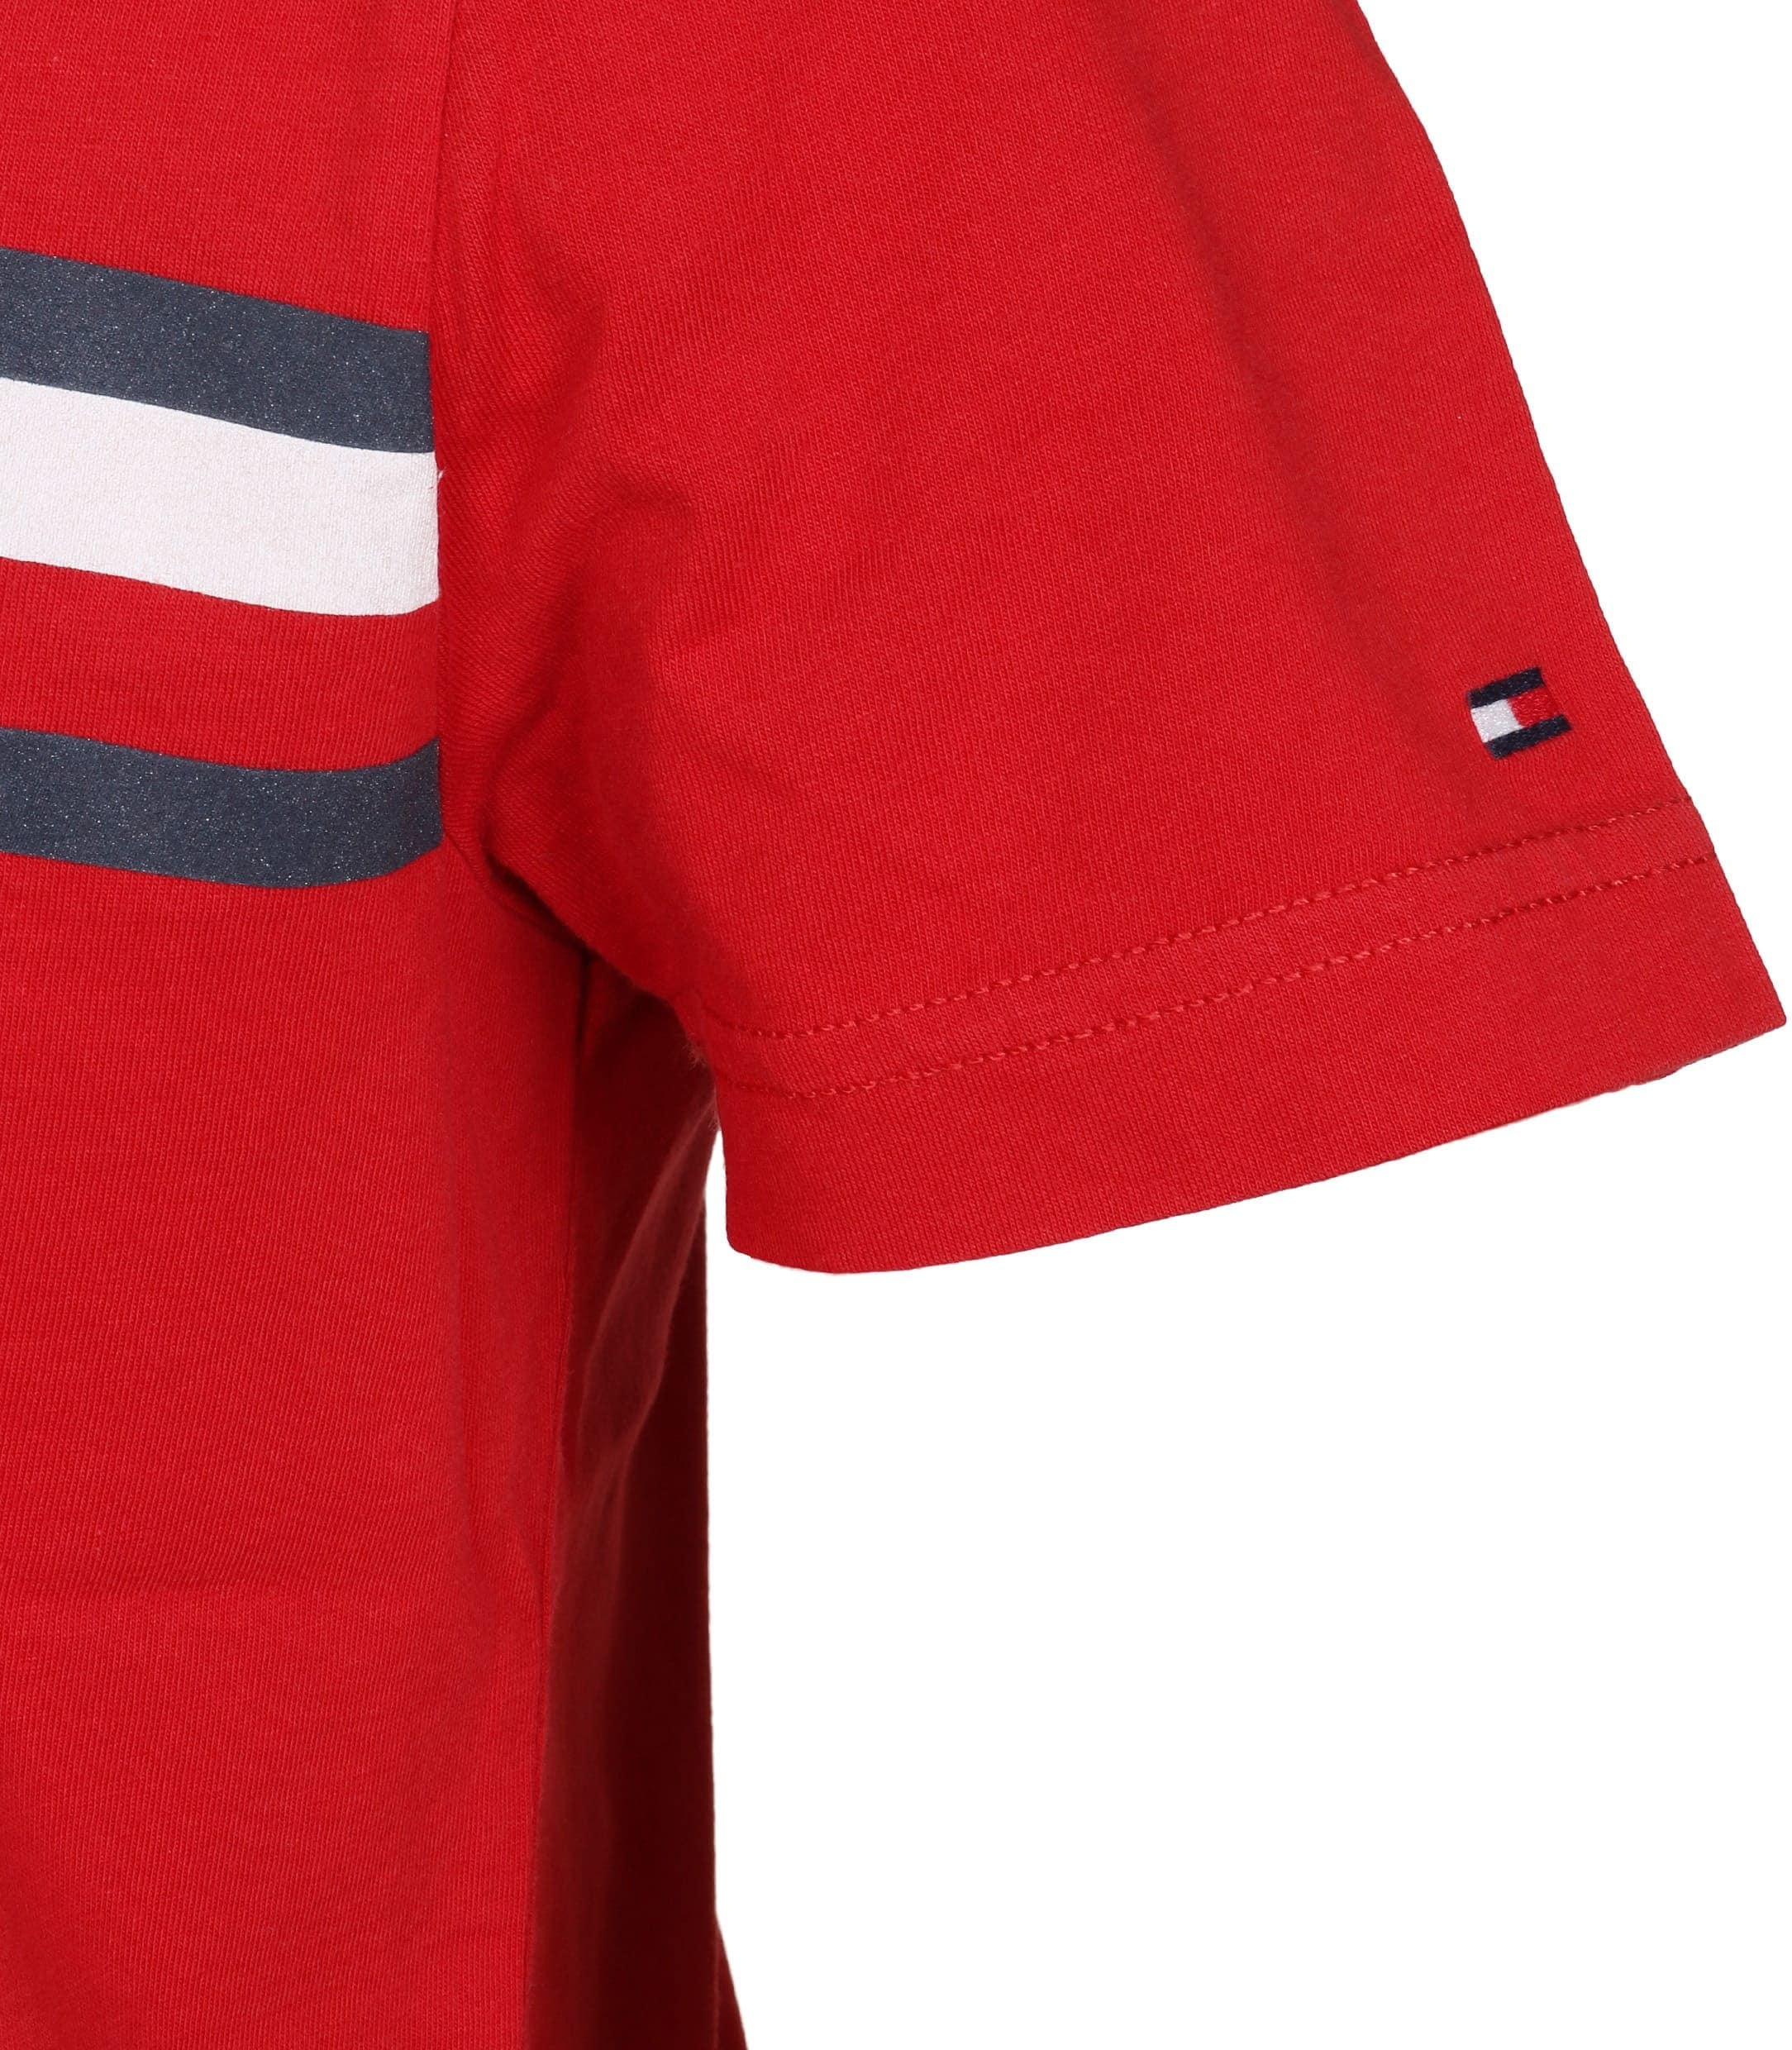 Tommy Hilfiger T-shirt TH Rood foto 2